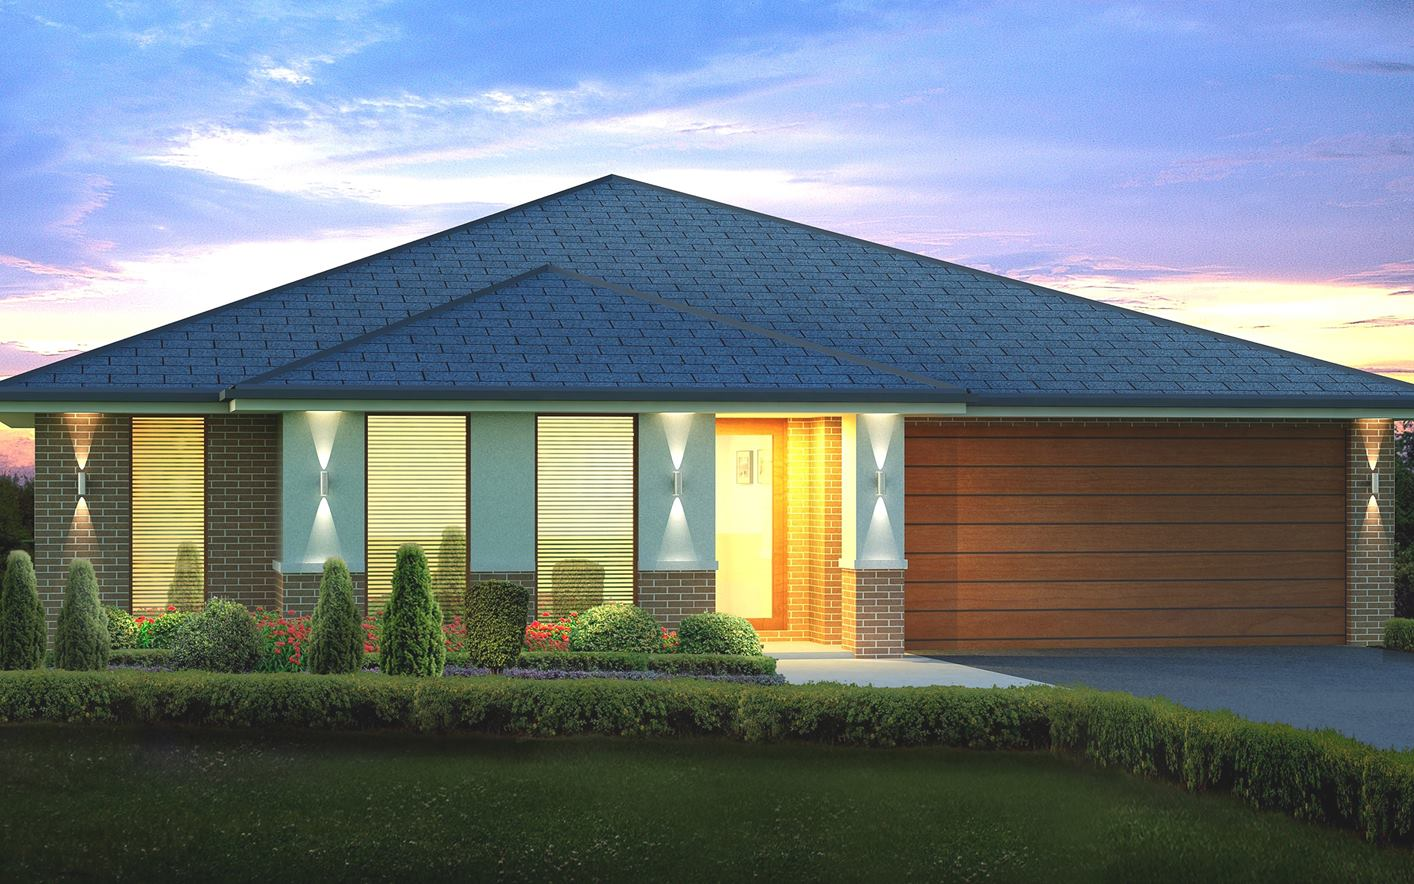 Metford Split Level Home Design with Classic Facade